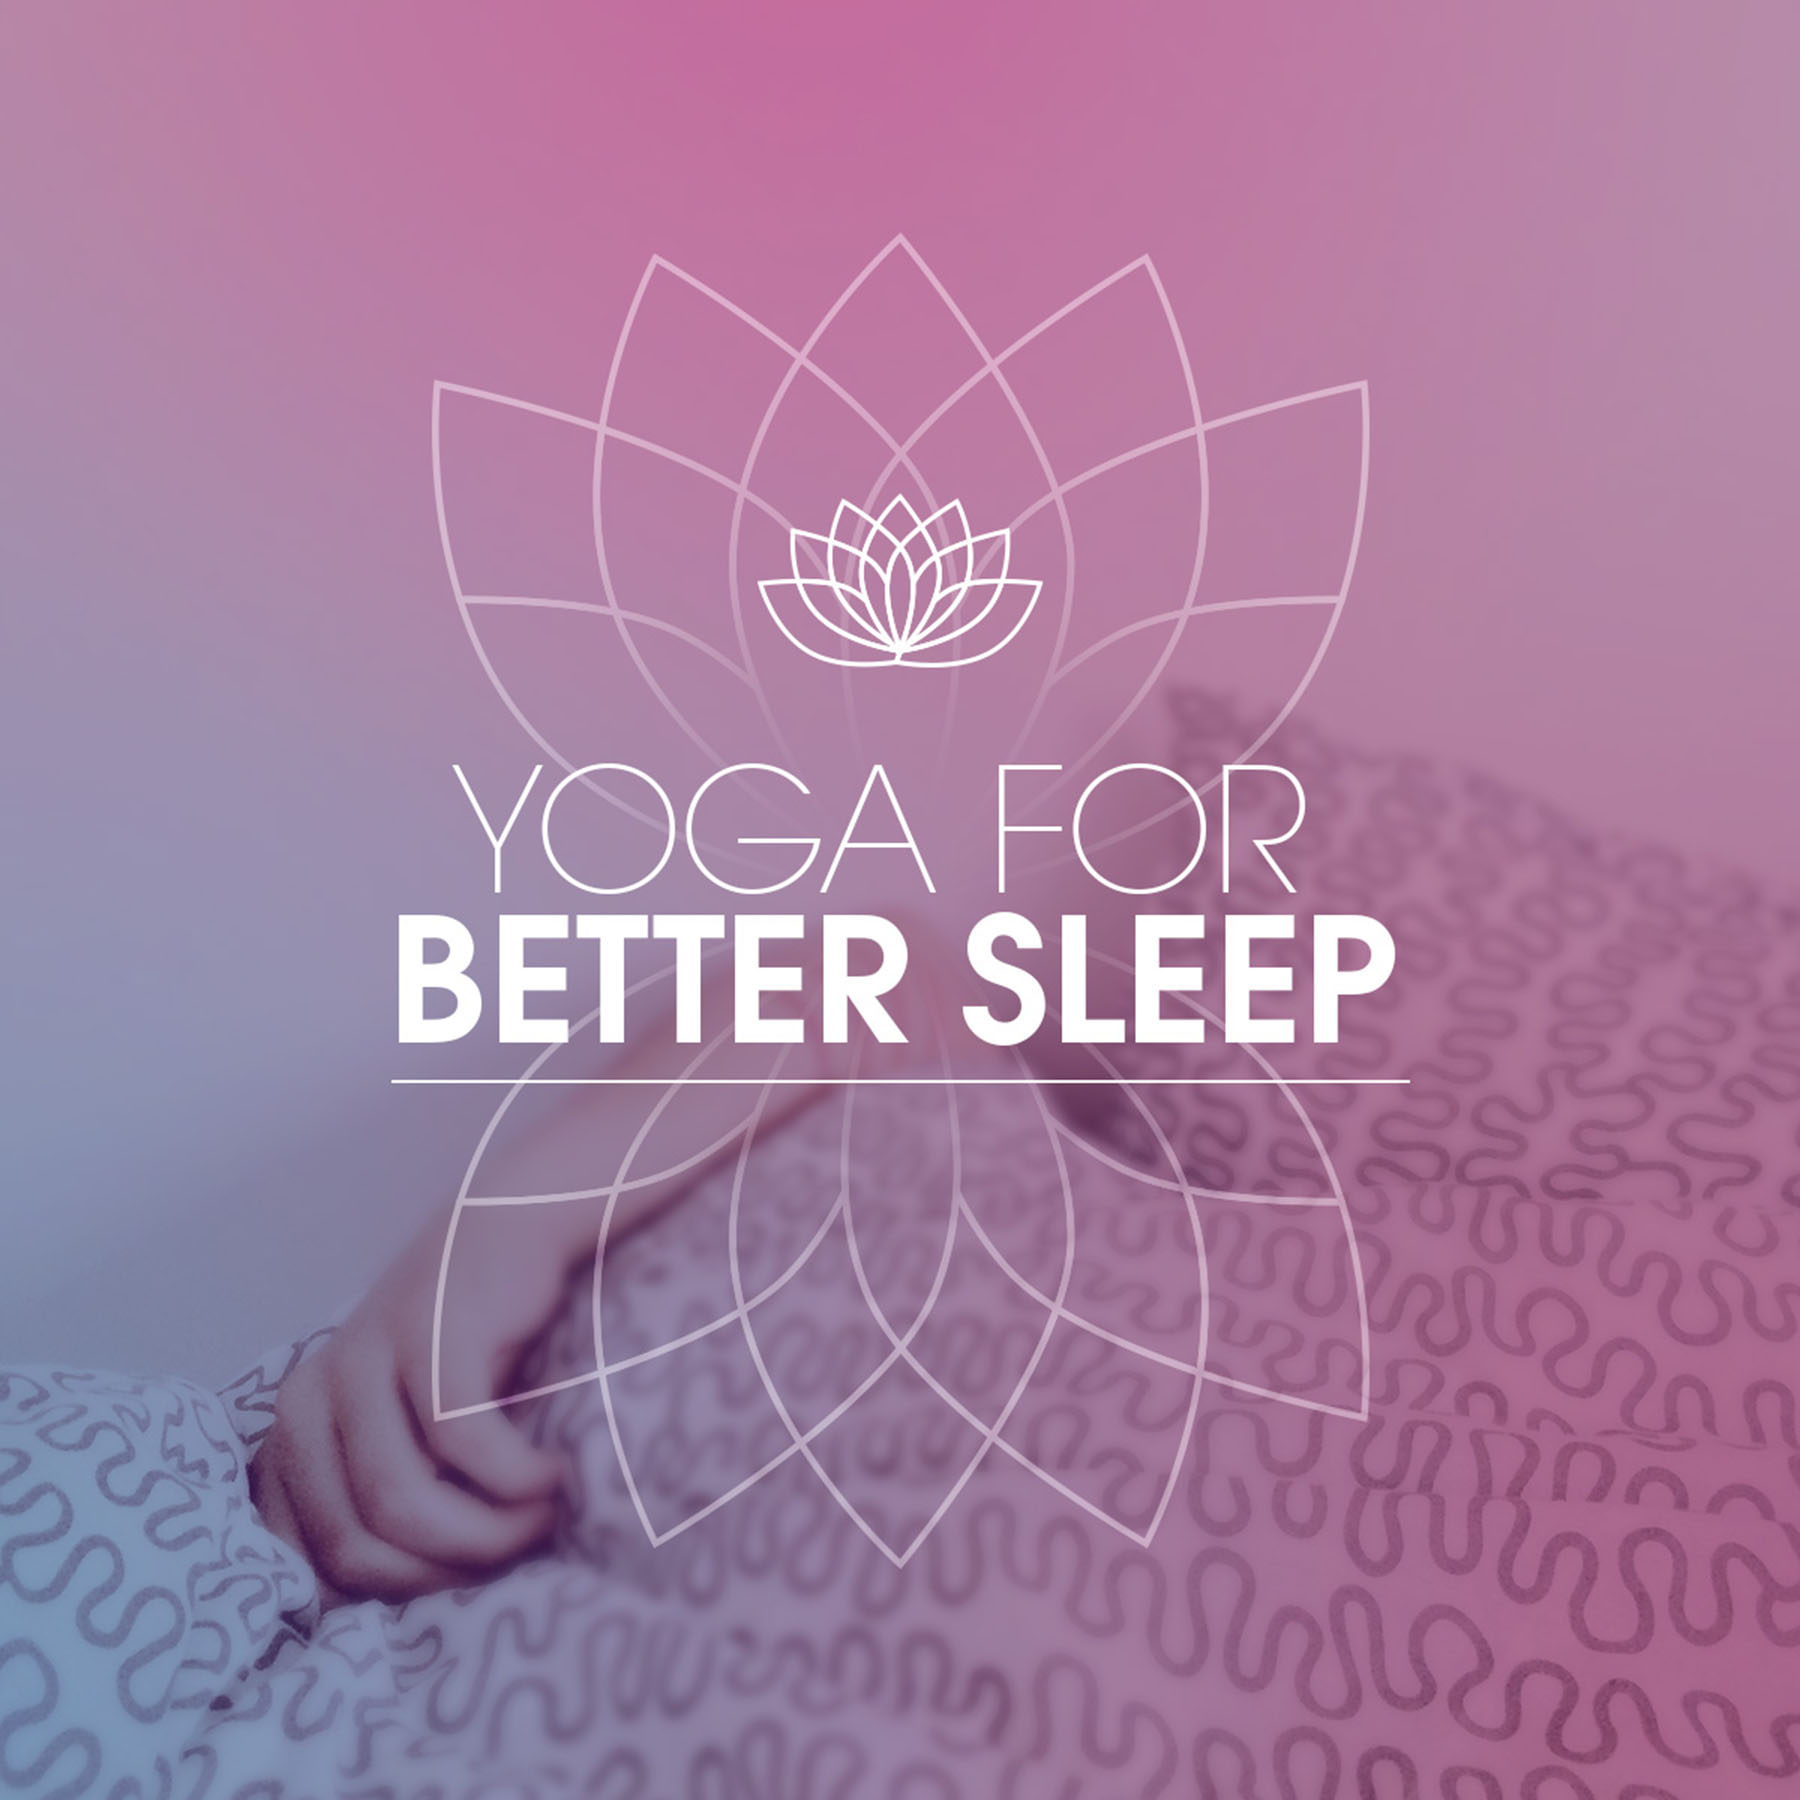 4 Ways to a Good Night's Sleep: Yoga for Better Sleep